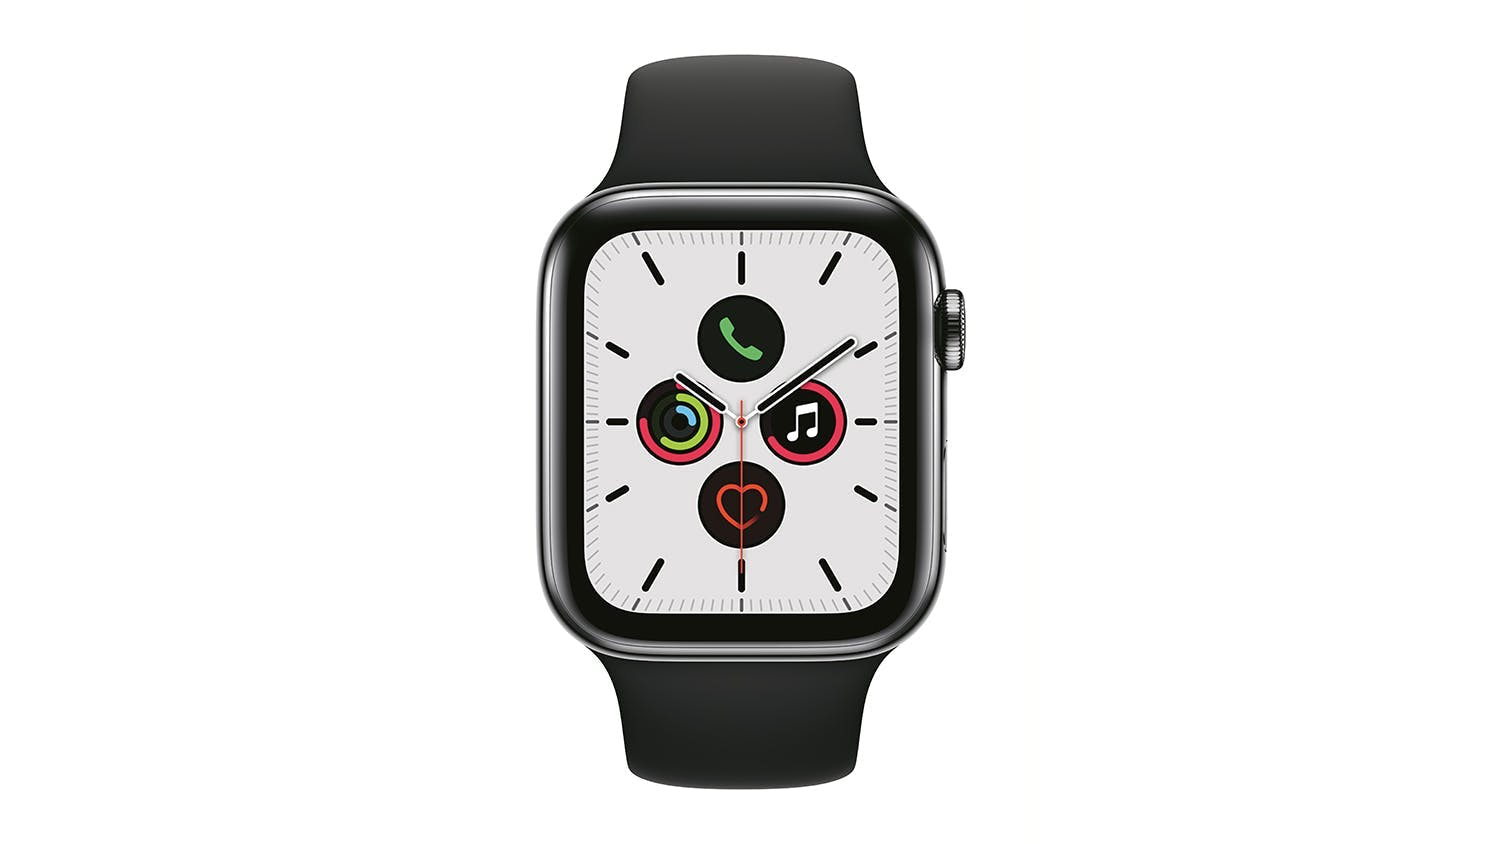 Apple Watch Series 5 (GPS+Cellular) 44mm Space Black Stainless Steel + Black Sport Band